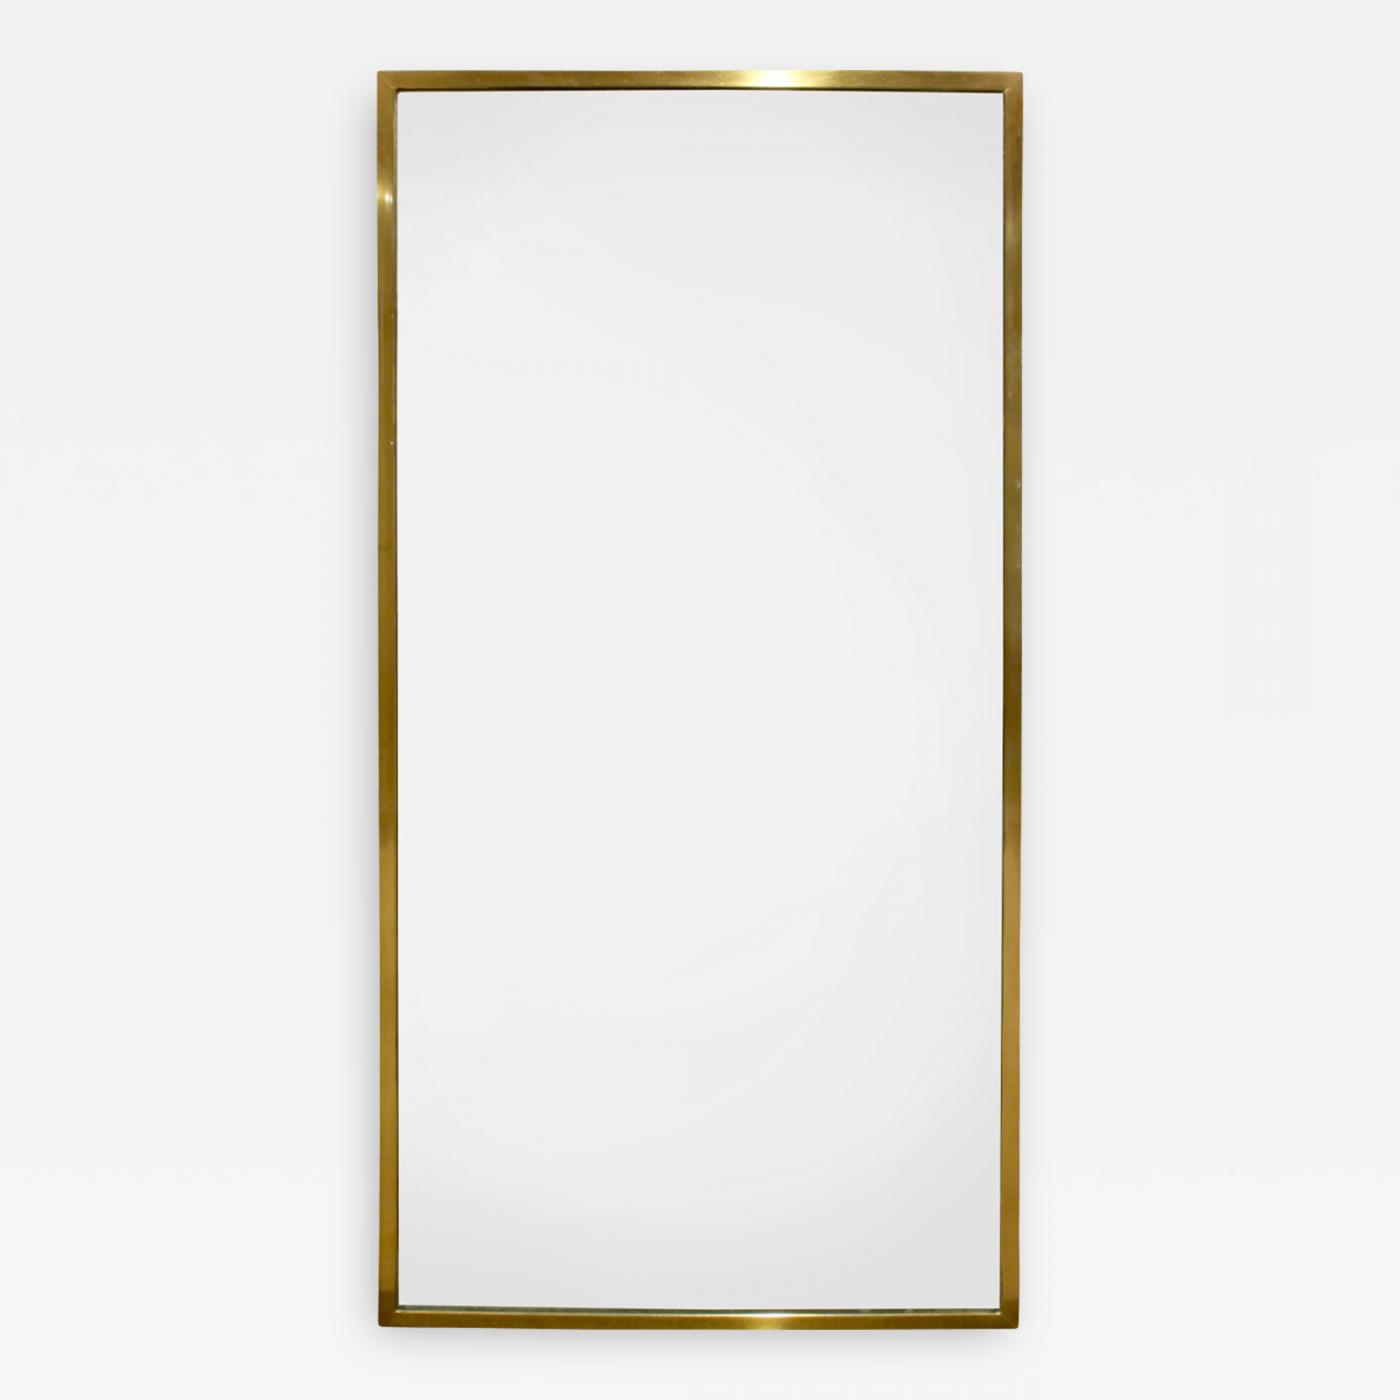 Popular Harvey Probber Large Rectangular Mirror With Brass Frame 1950S Inside Long Rectangular Wall Mirrors (View 17 of 20)